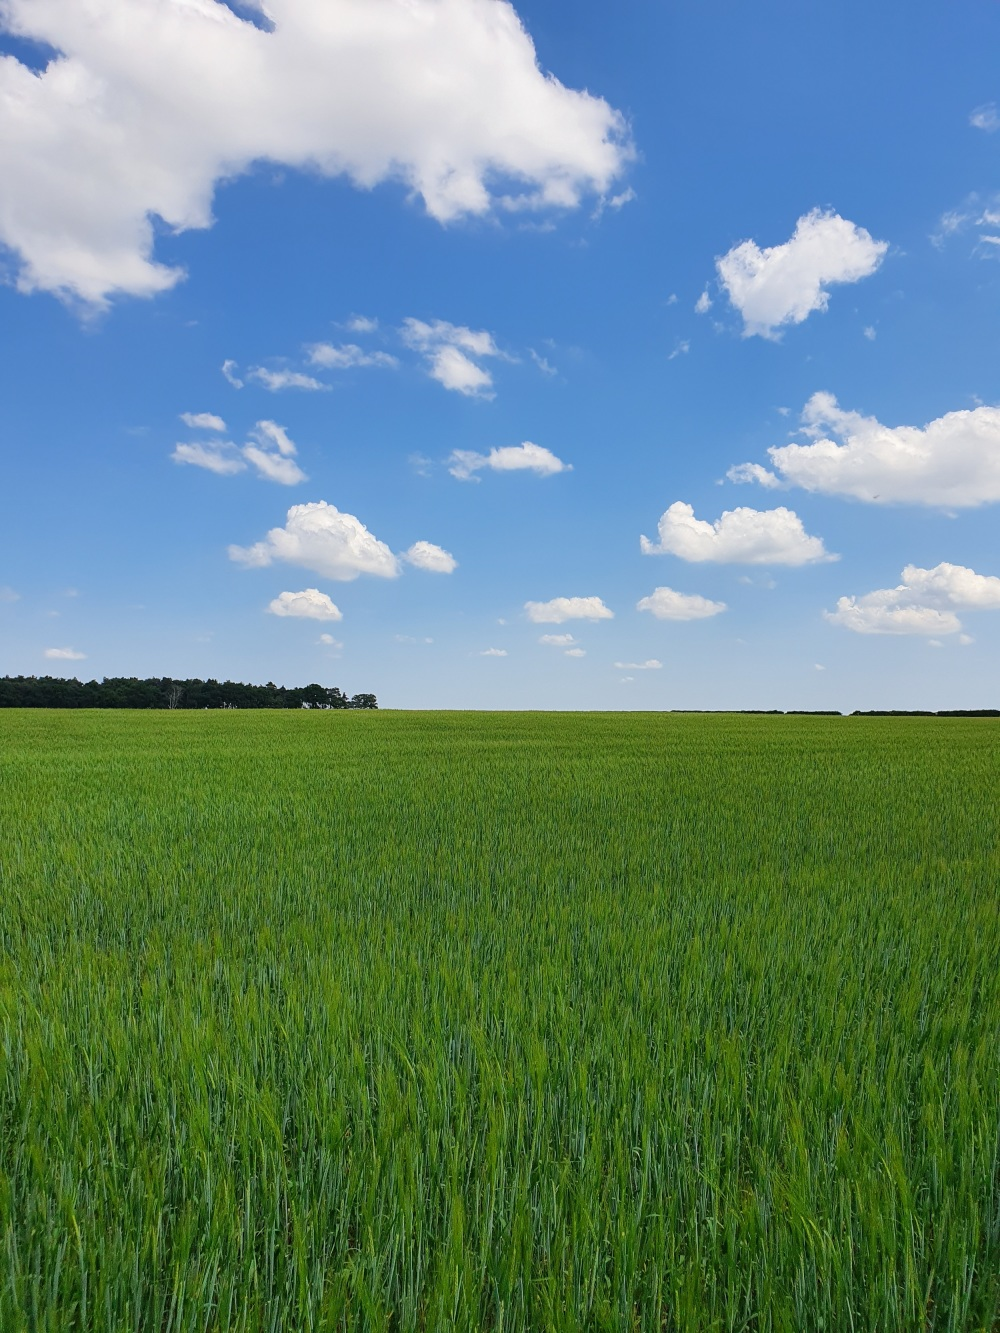 A field full of crops on a sunny day